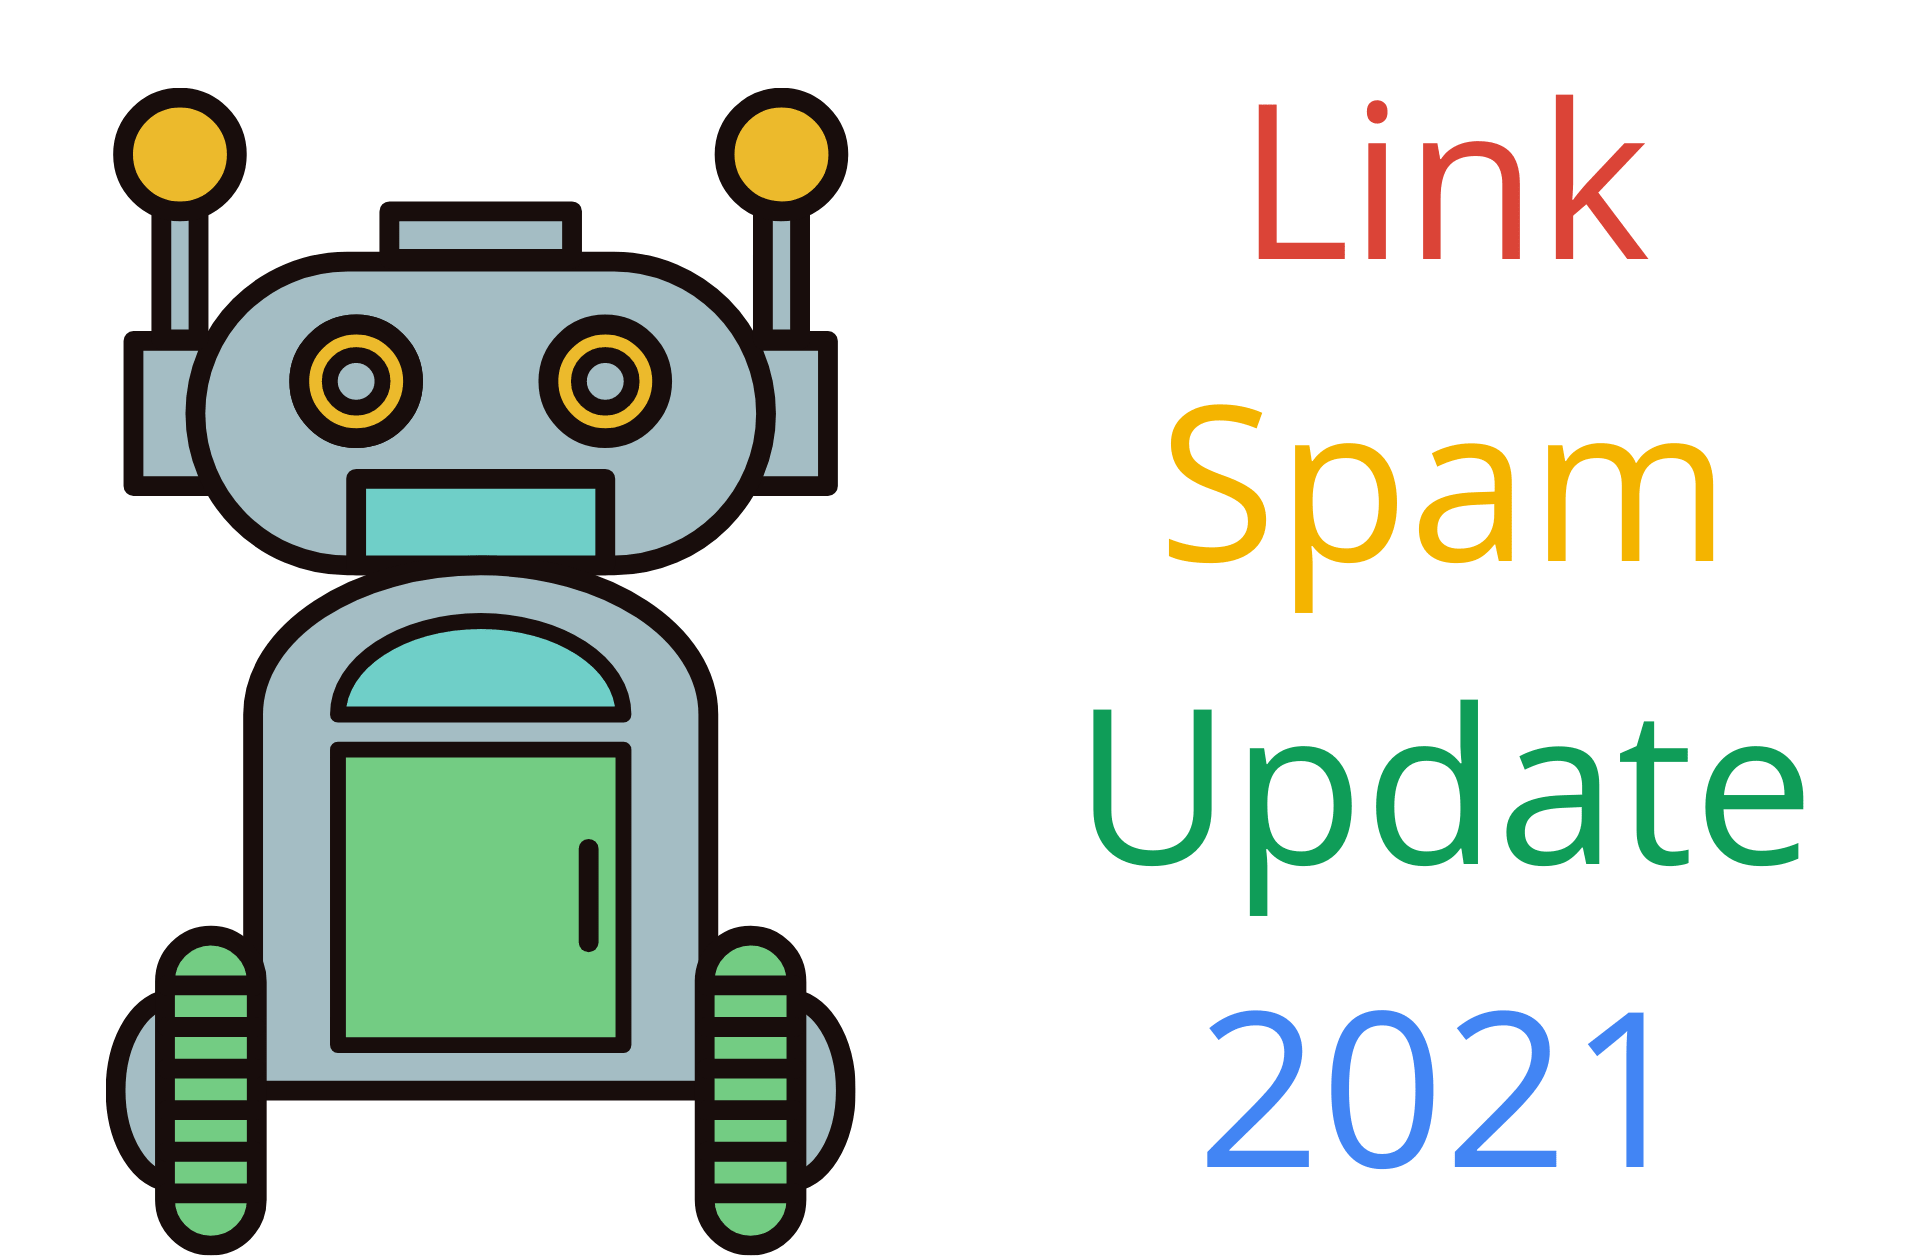 Android Robot next to the words link spam update 2021